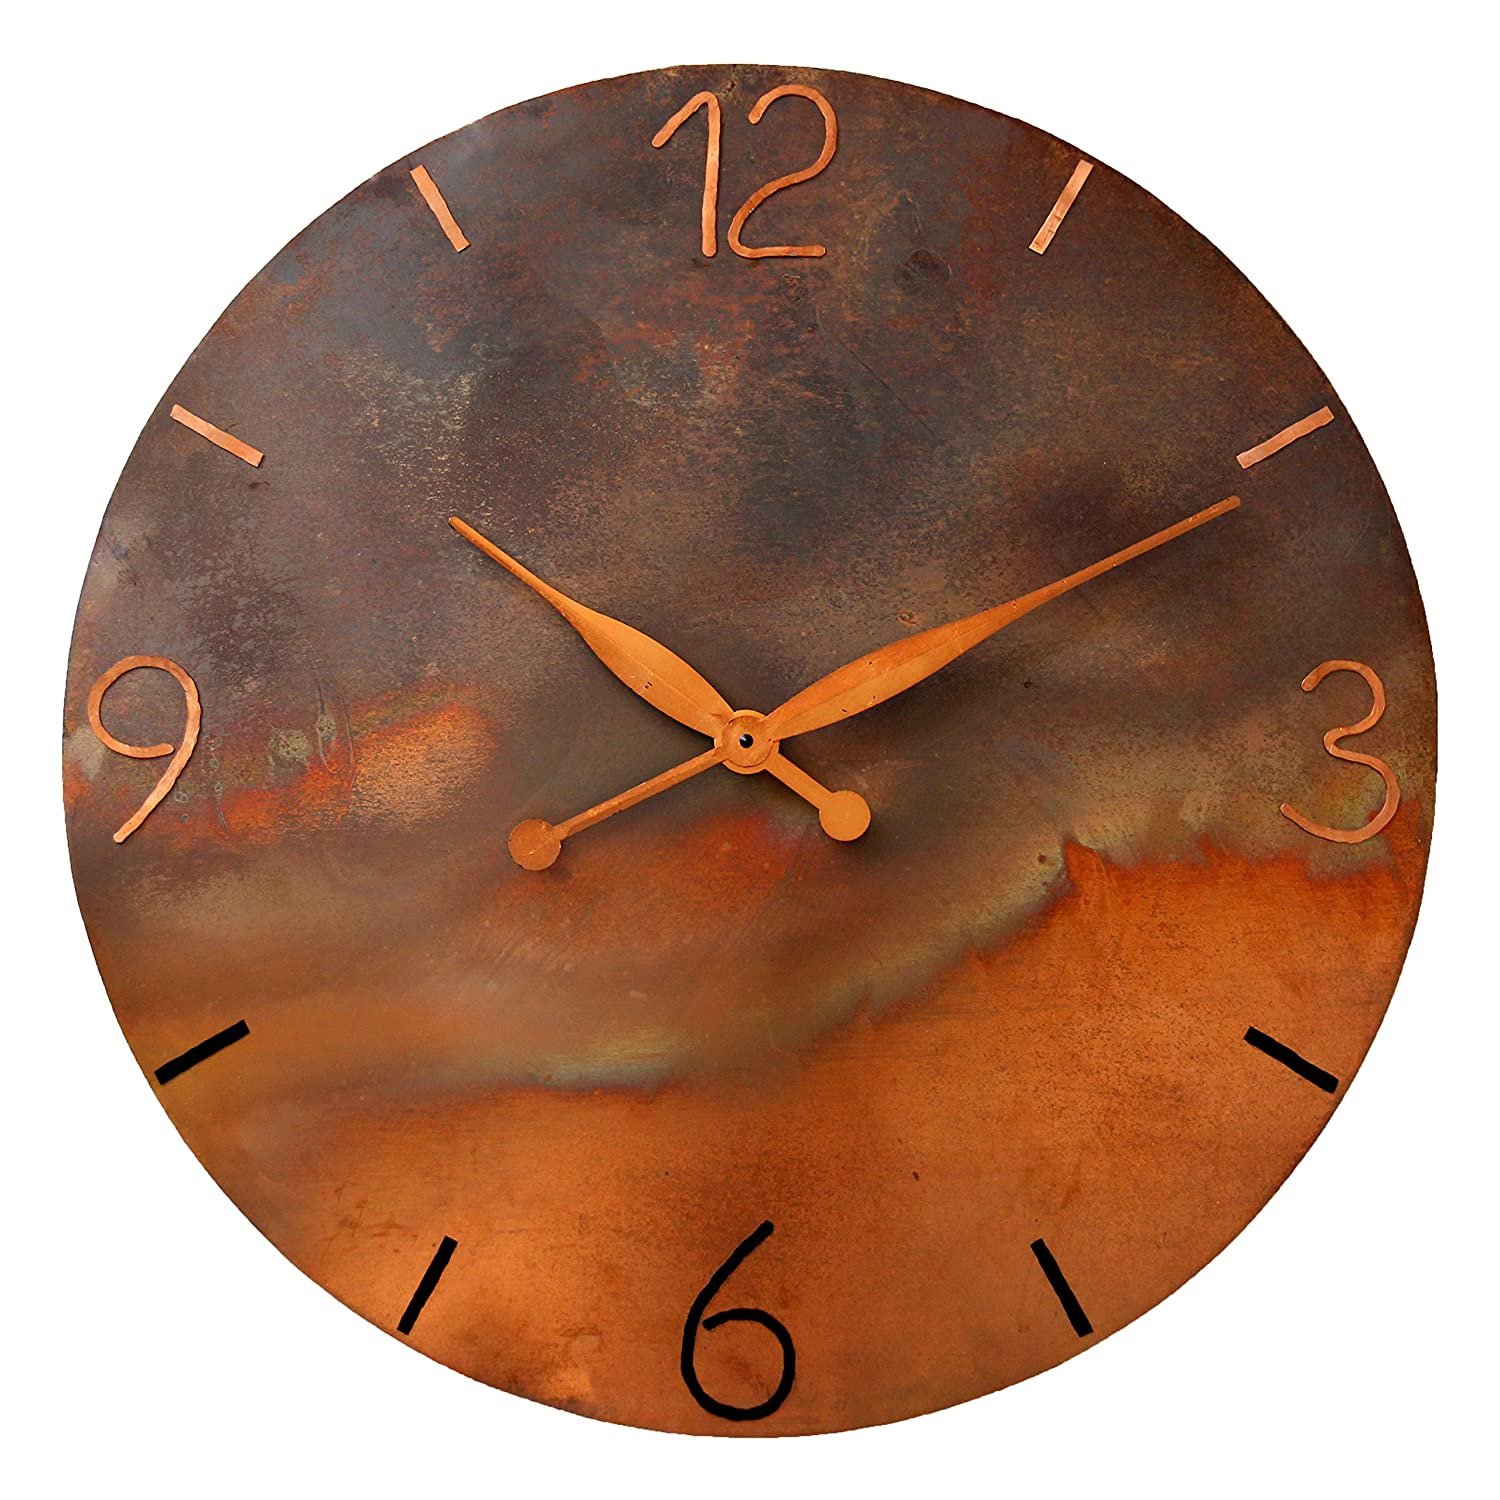 Oversized Round Copper Rustic Wall Clock 24-inch - Silent Non Ticking Gift for Home/Office/Kitchen/Bedroom/Living Room